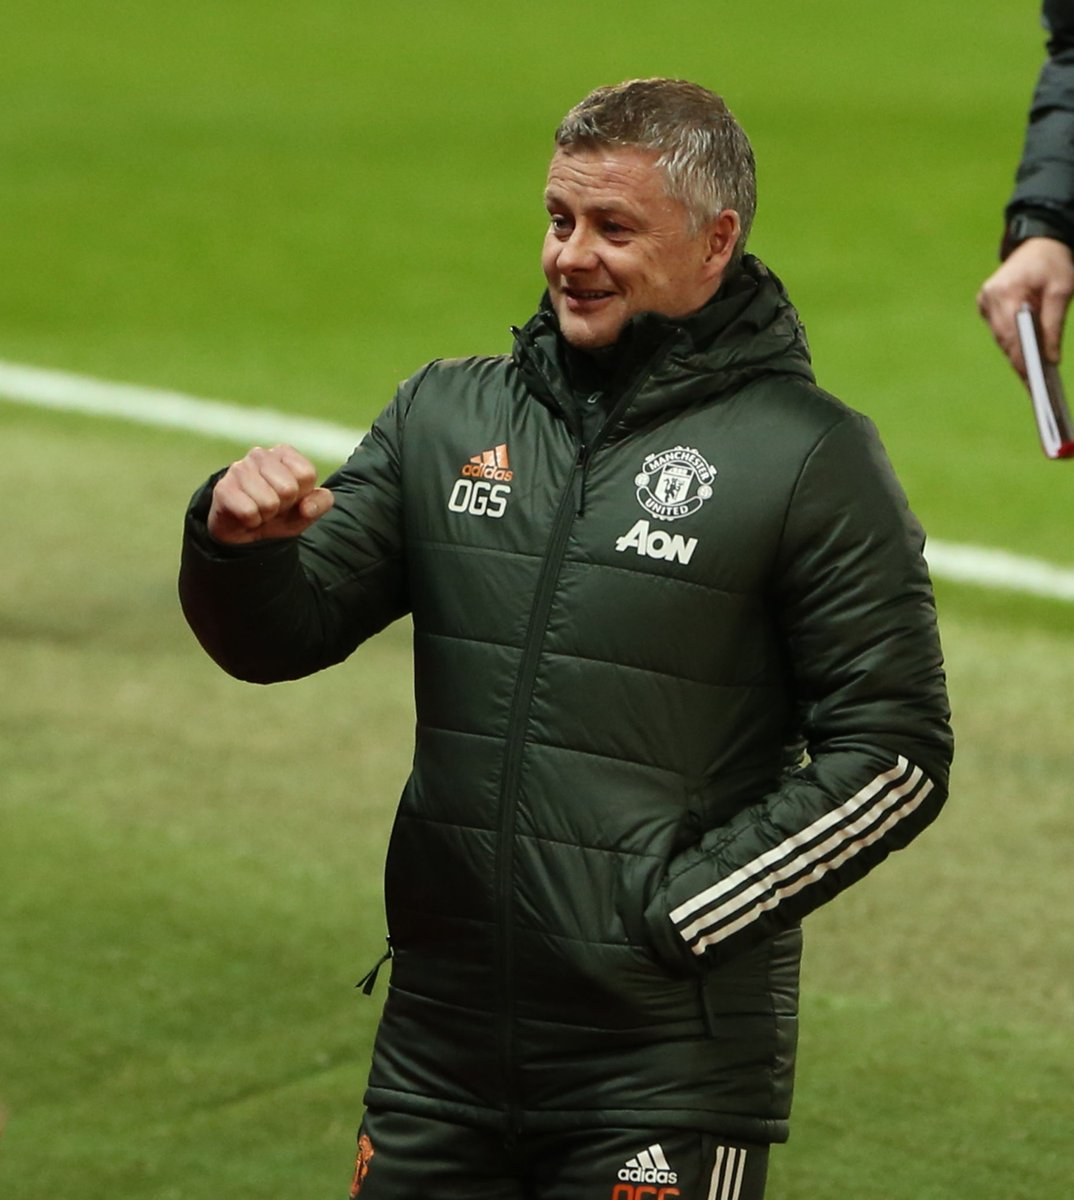 FT: Manchester United 3 Liverpool 2 -   #mufc beat Liverpool for the first time under Solskjaer.